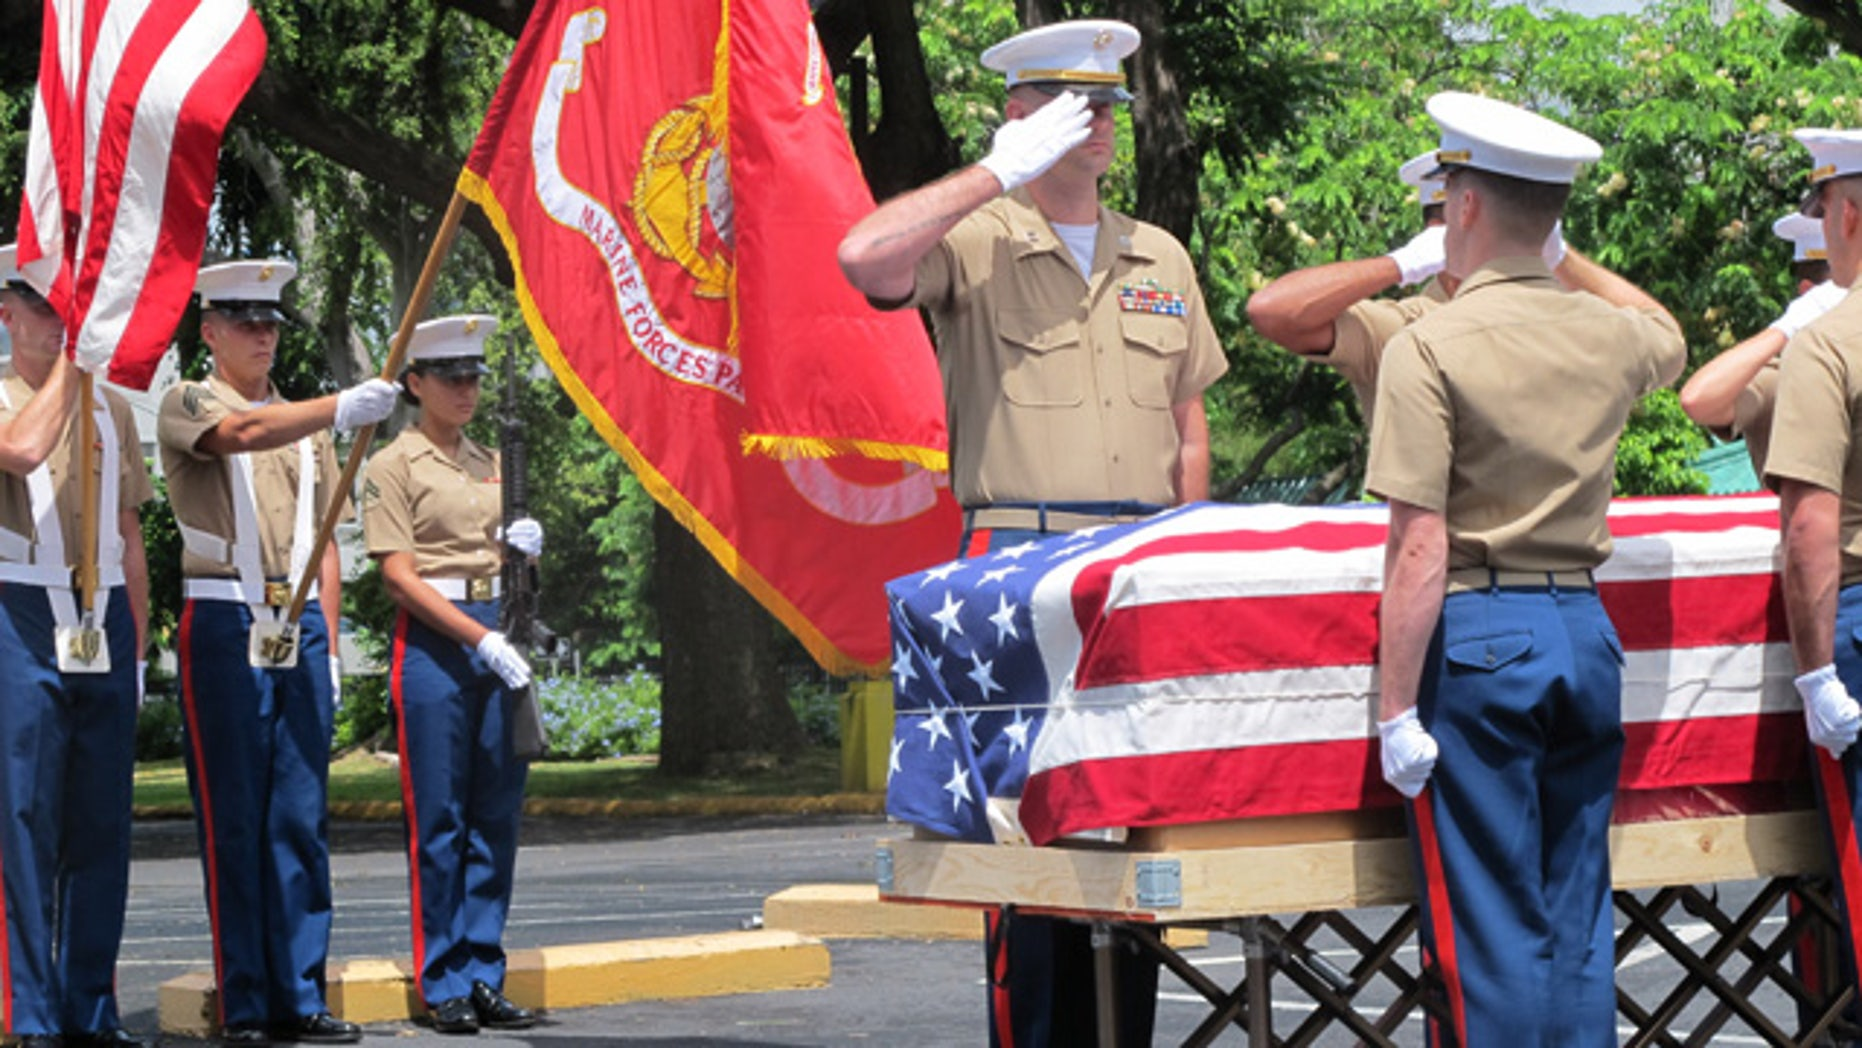 Sept. 24, 2015: United States Marines salute during a ceremony in Honolulu for the departure of 1st Lt. Alexander Bonnyman's remains. (AP Photo/Audrey McAvoy)